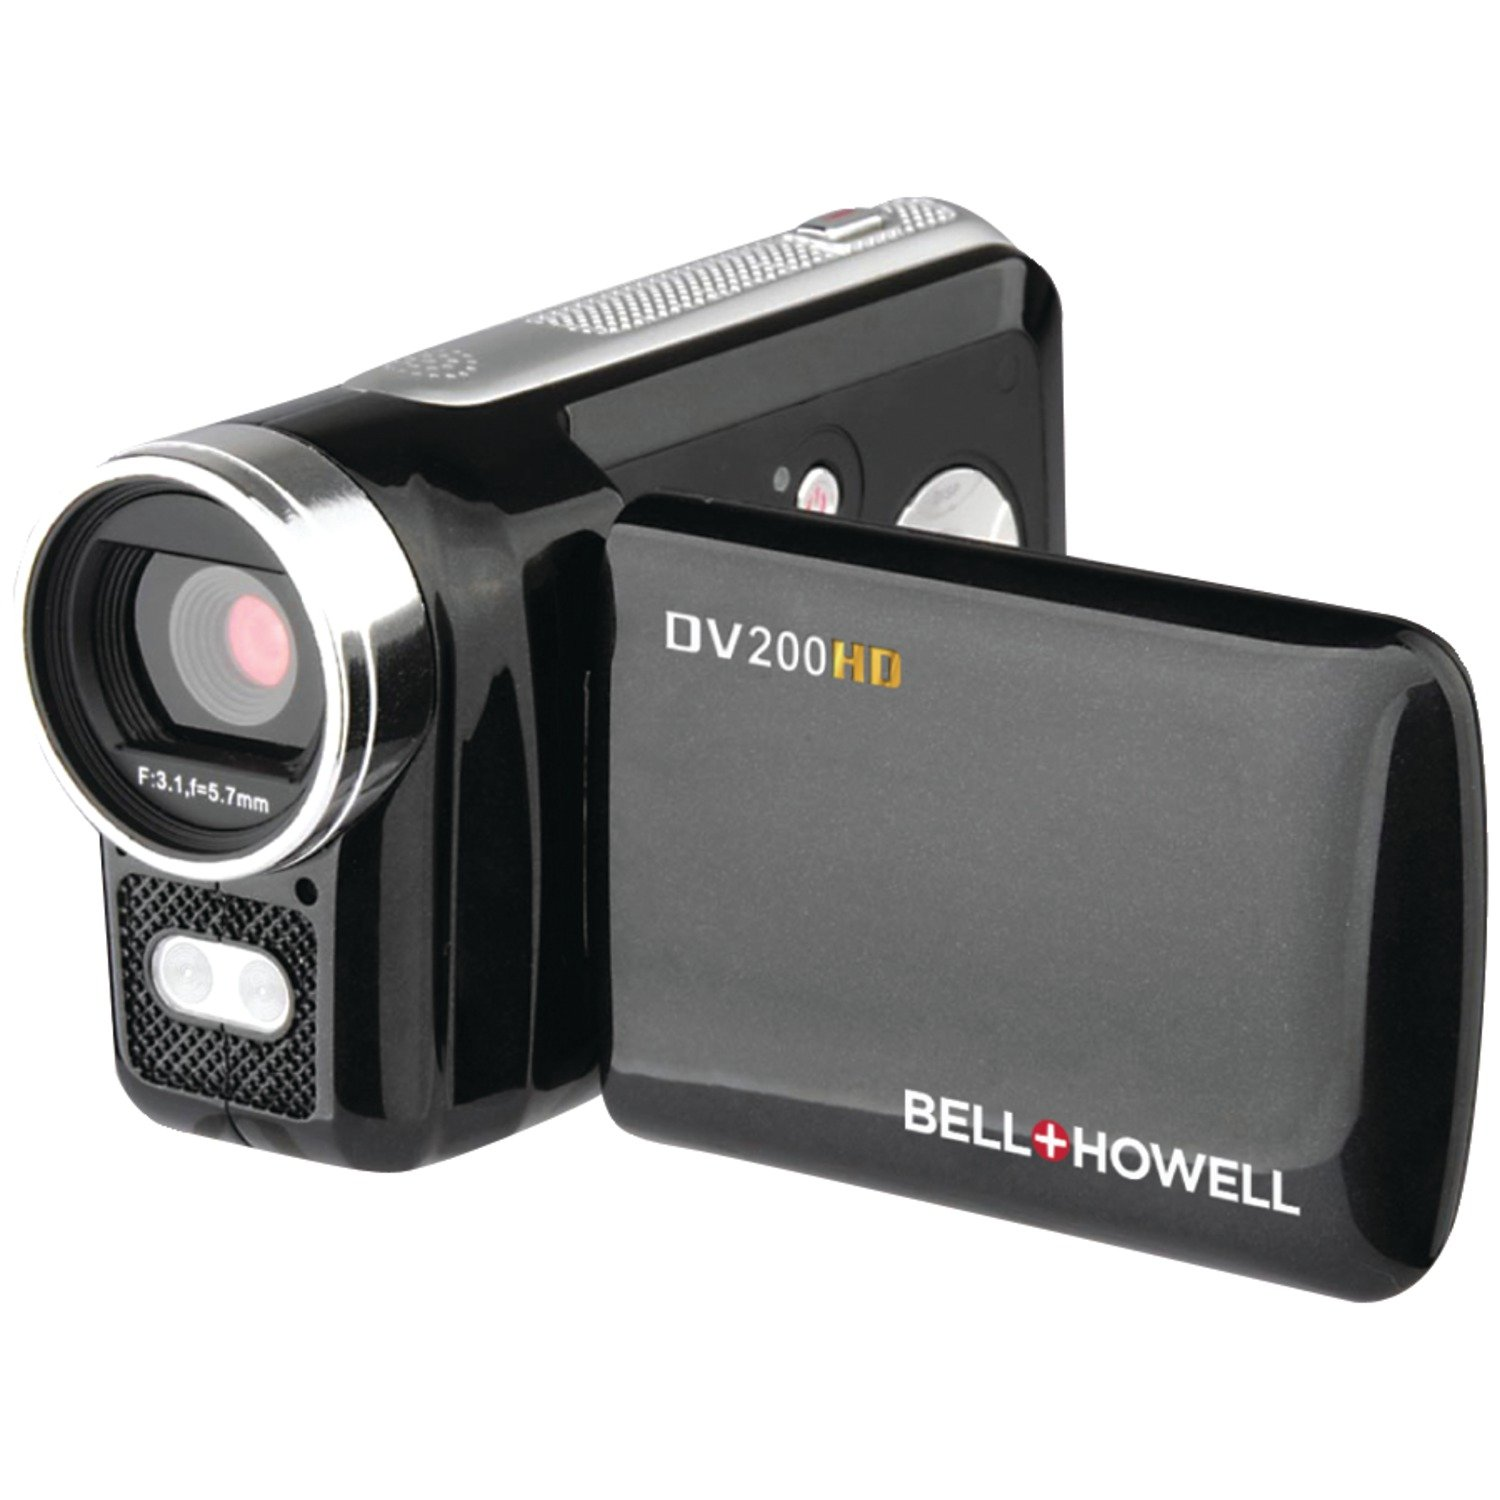 Image result for digital camcorder